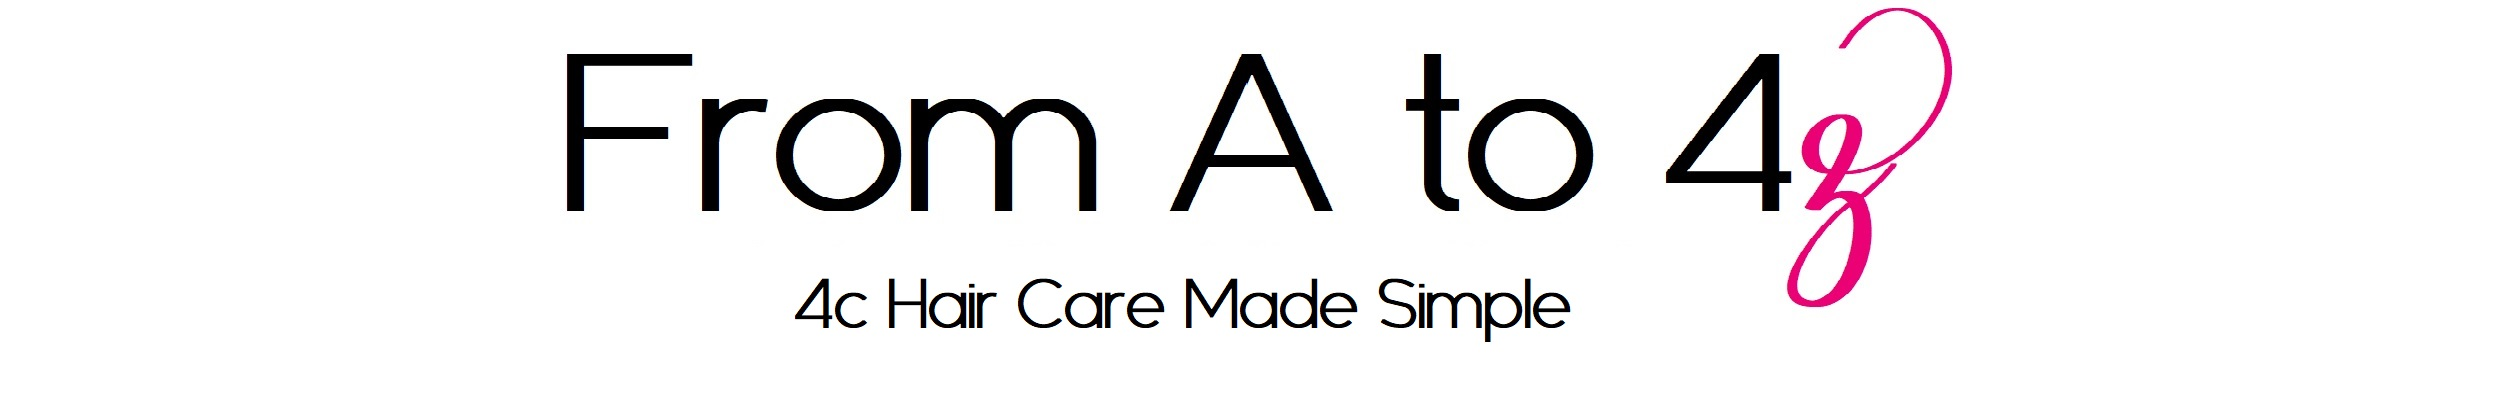 From A to 4z | 4c hair care made simple